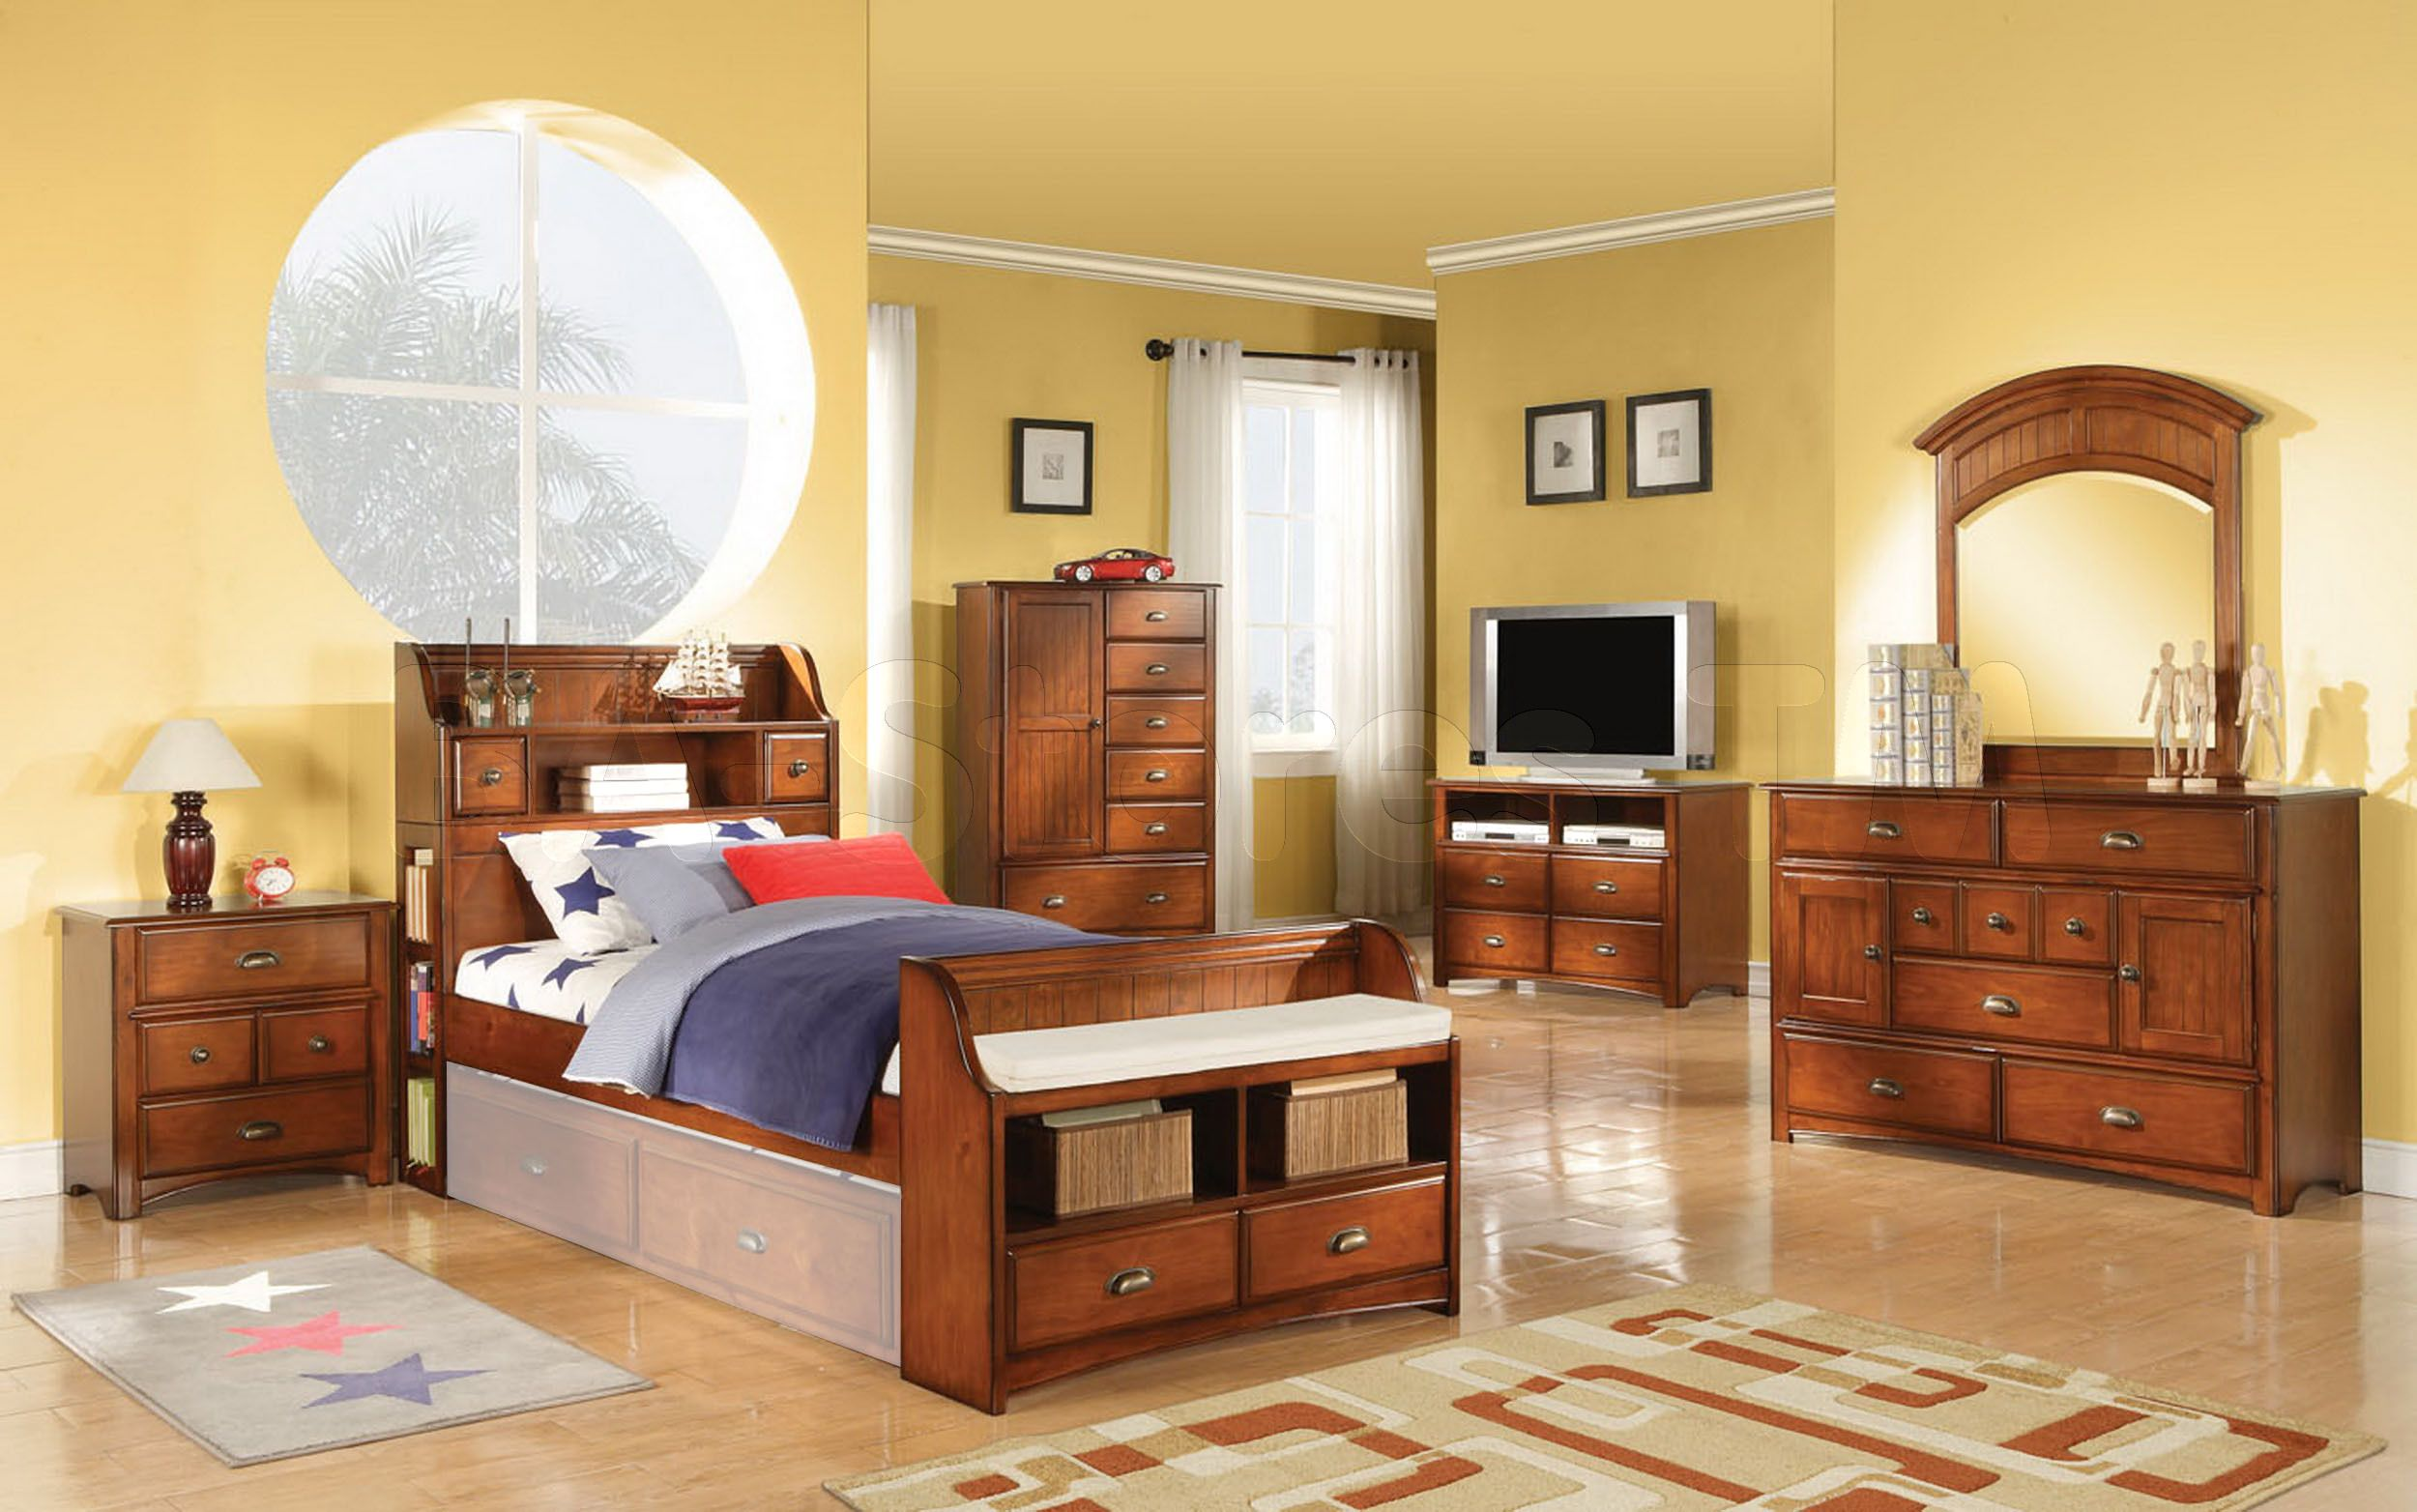 1000 Images About Kids Bedroom Sets On Pinterest Kids Bedroom